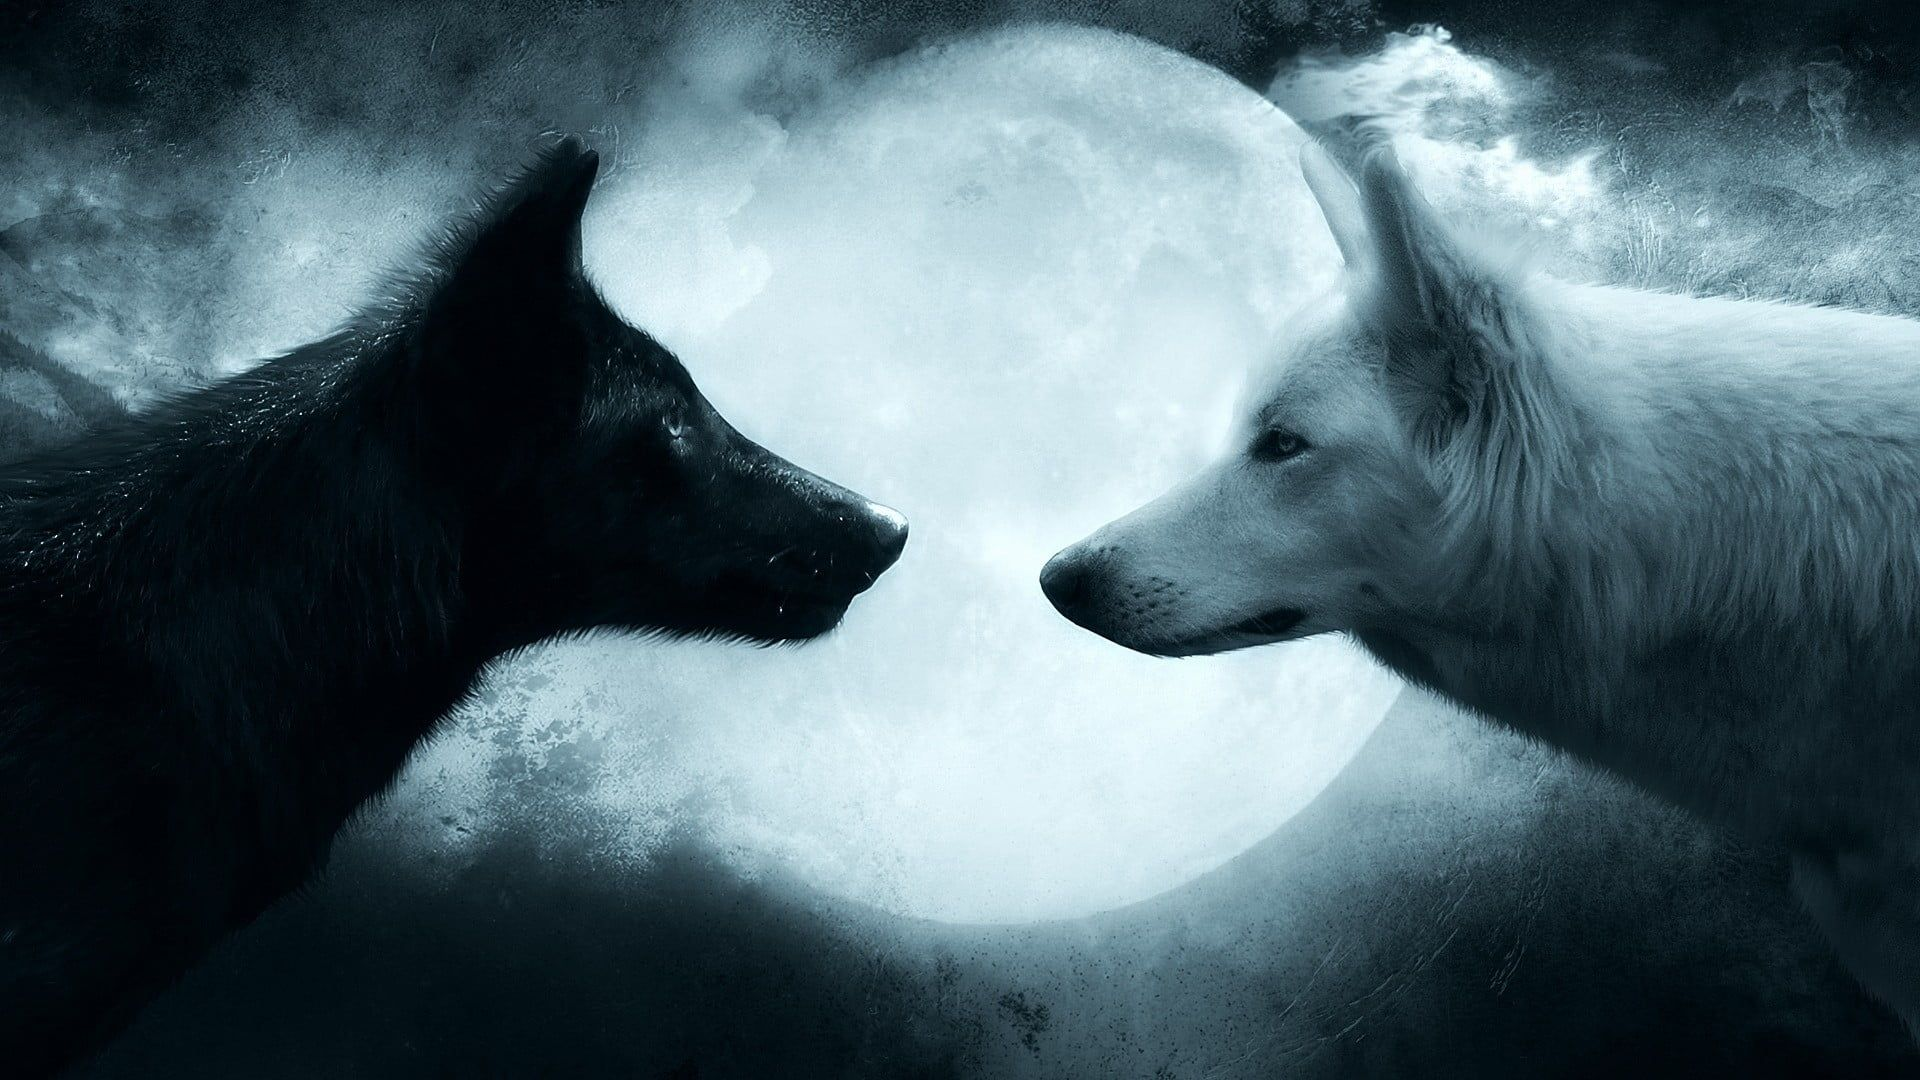 Two Black And White Wolves Wallpaper Wolf Couple 1080p Wallpaper Hdwallpaper Desktop Wolf Black And White Wolf Wallpaper White Wolf